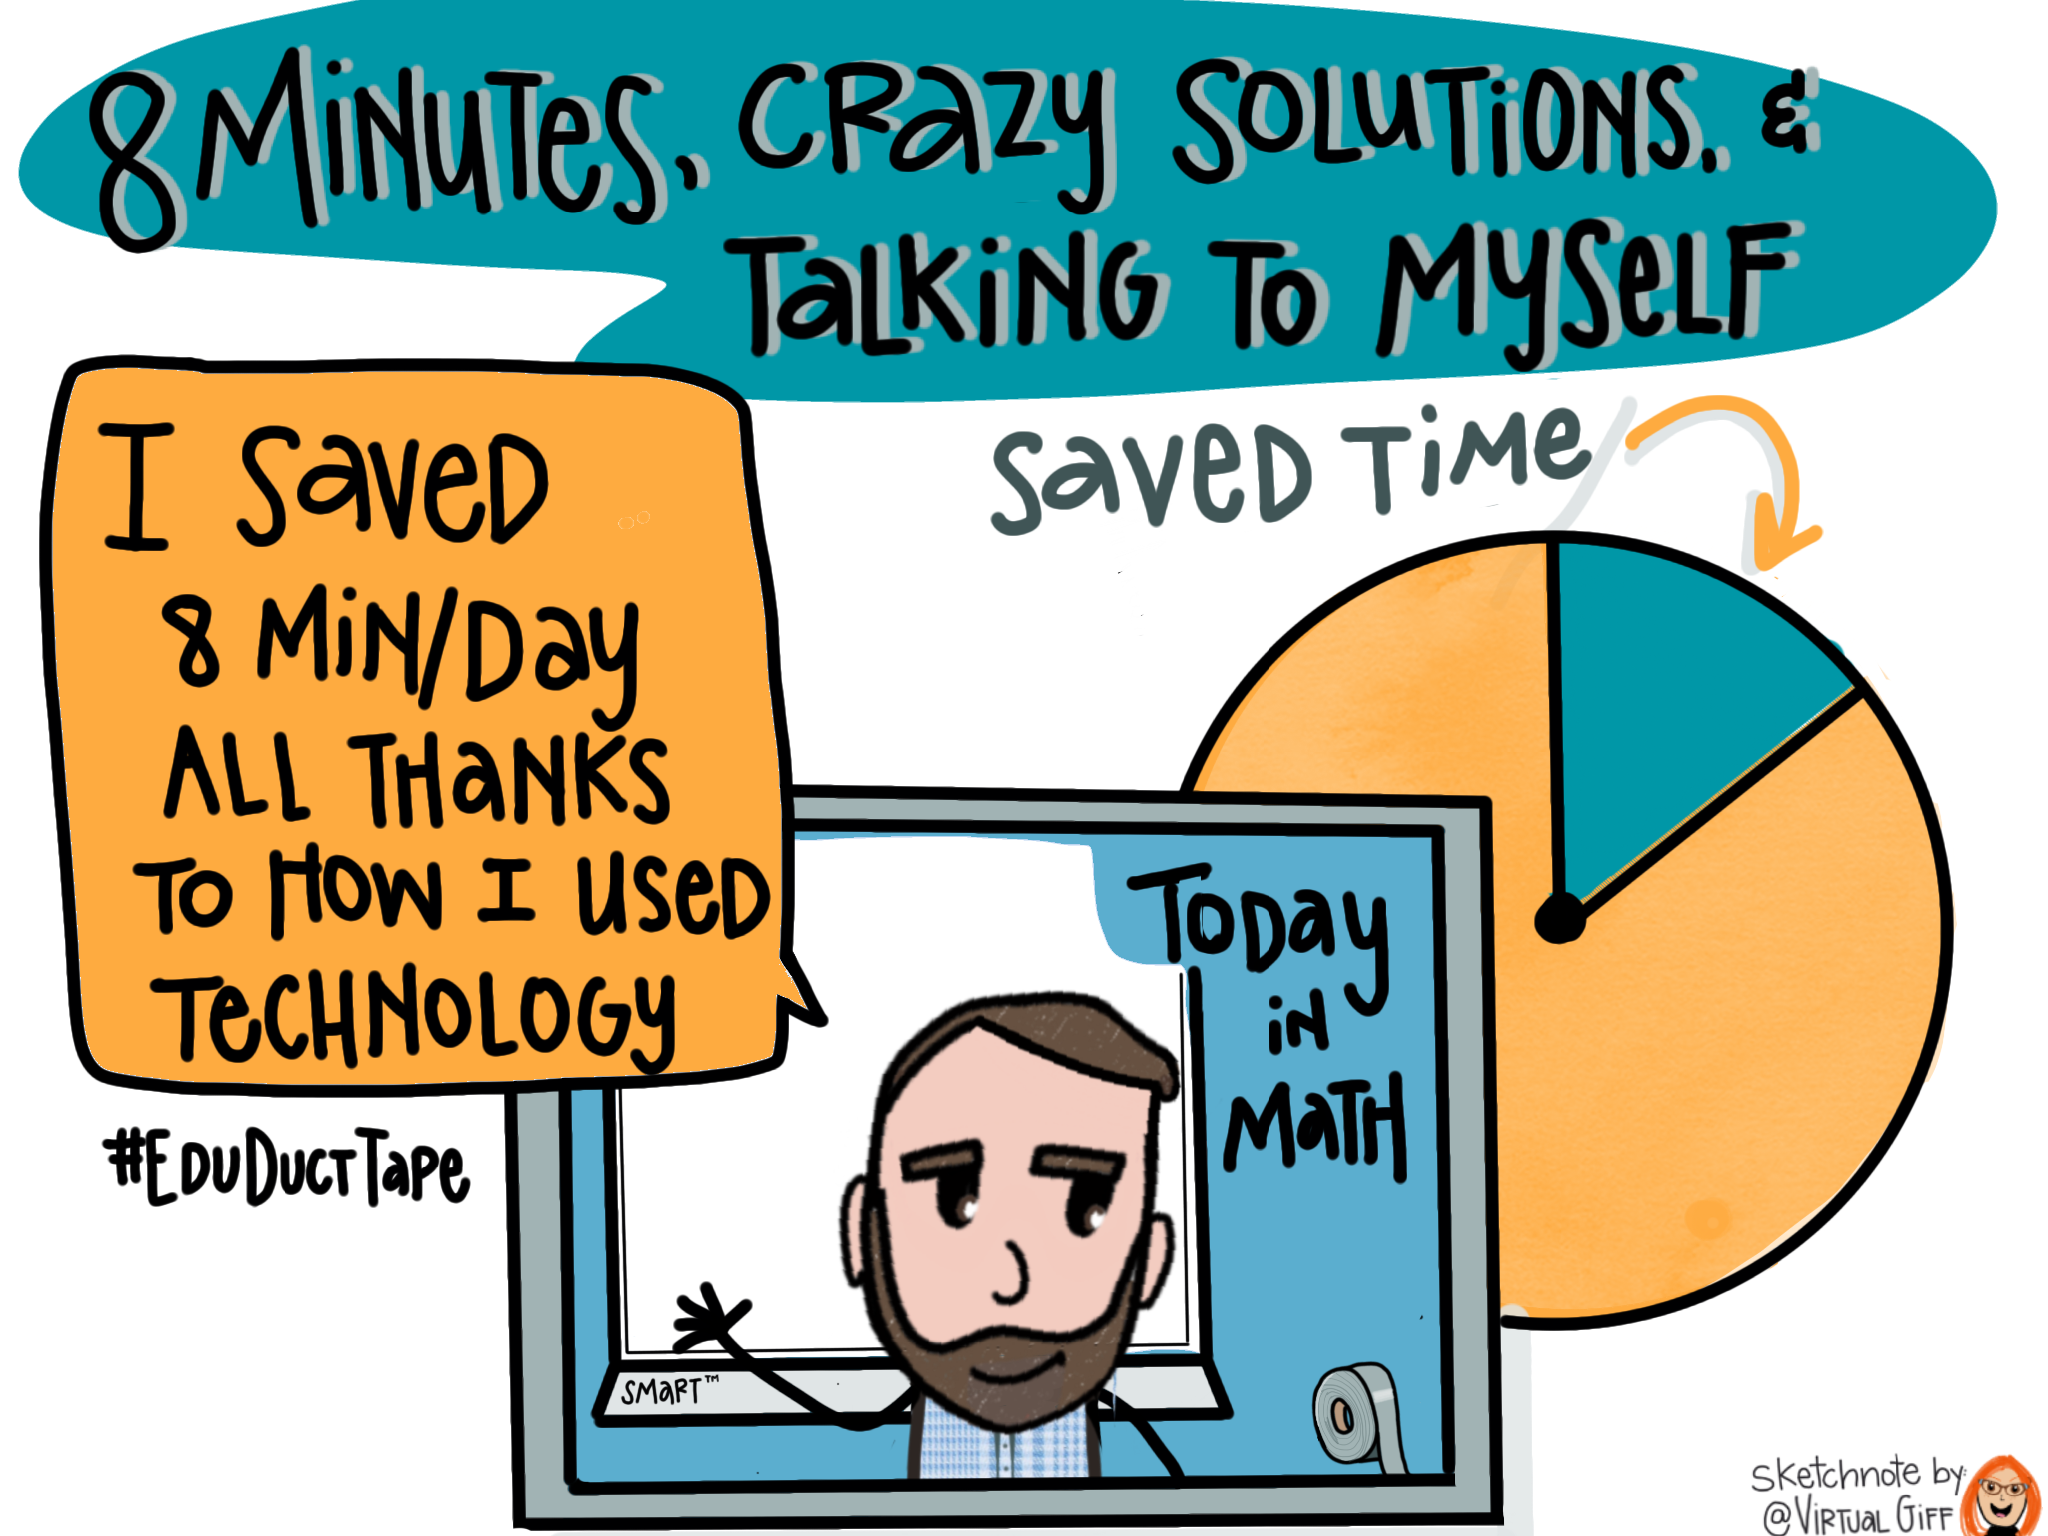 """This sketchnote features the title of Chapter 7 of the Educational Duct Tape Book: """"8 Minutes, Crazy Solutions, & Talking to Myself.' It shows an image of Jake on a SmartBoard saying """"I saved 8 minutes per day all thanks to how I used techcnology!"""" It also shows a pie graph showing about 12.5% shaded and labeled """"saved time."""""""